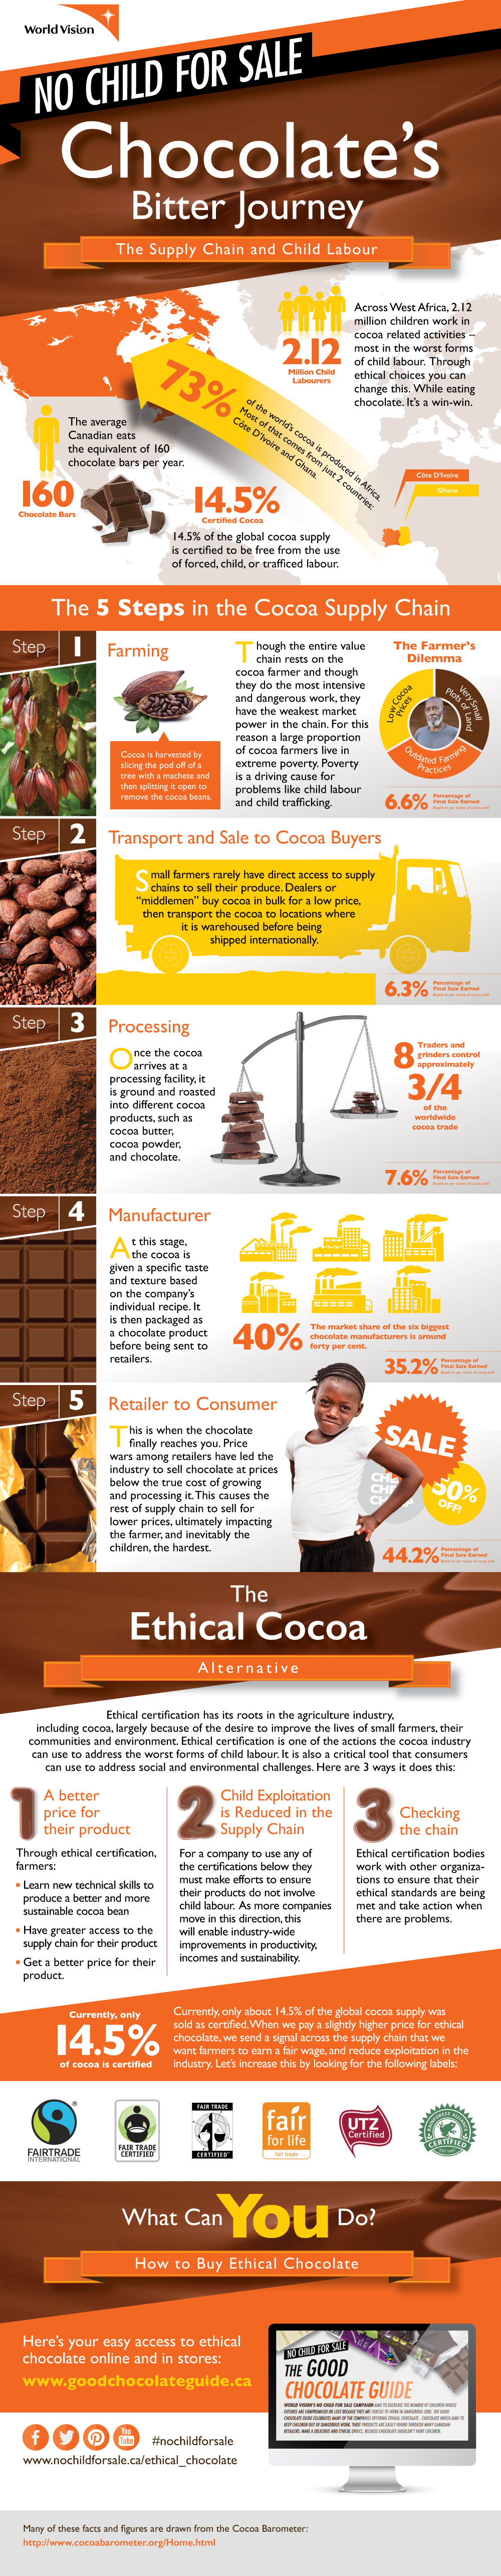 cocoa_a bitter journey_infographic_feb_09